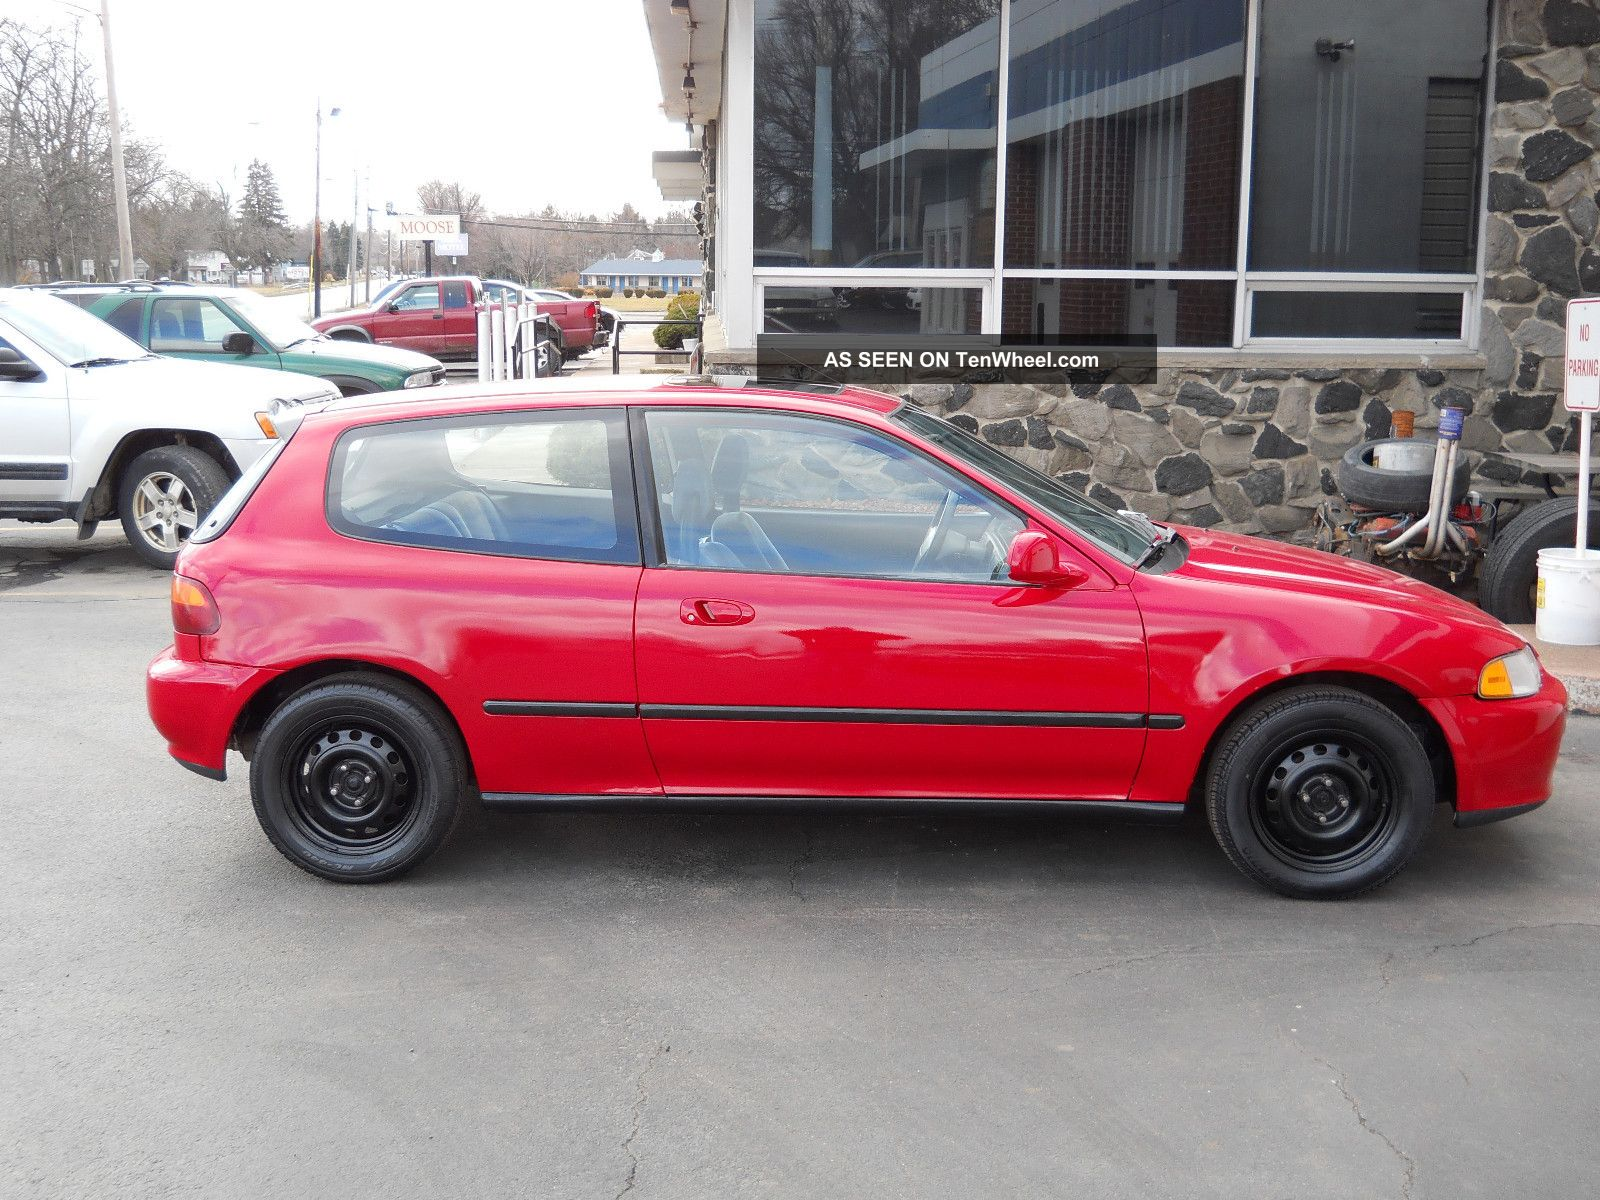 1993 honda civic hatchback - photo #11